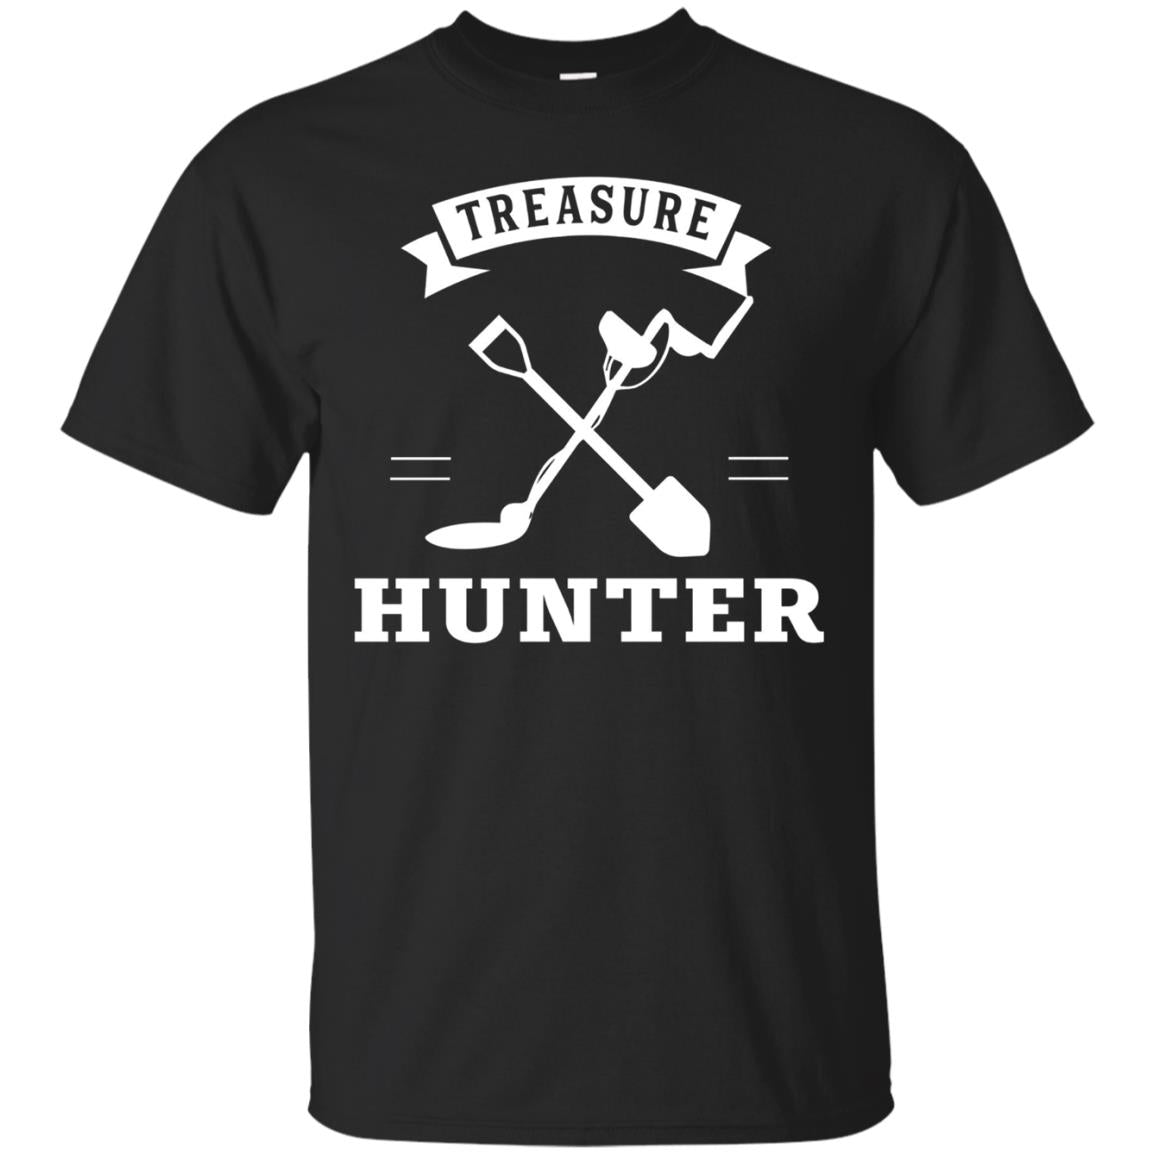 Treasure Hunters Metal Detector Hunting Gear Tracker Shirt